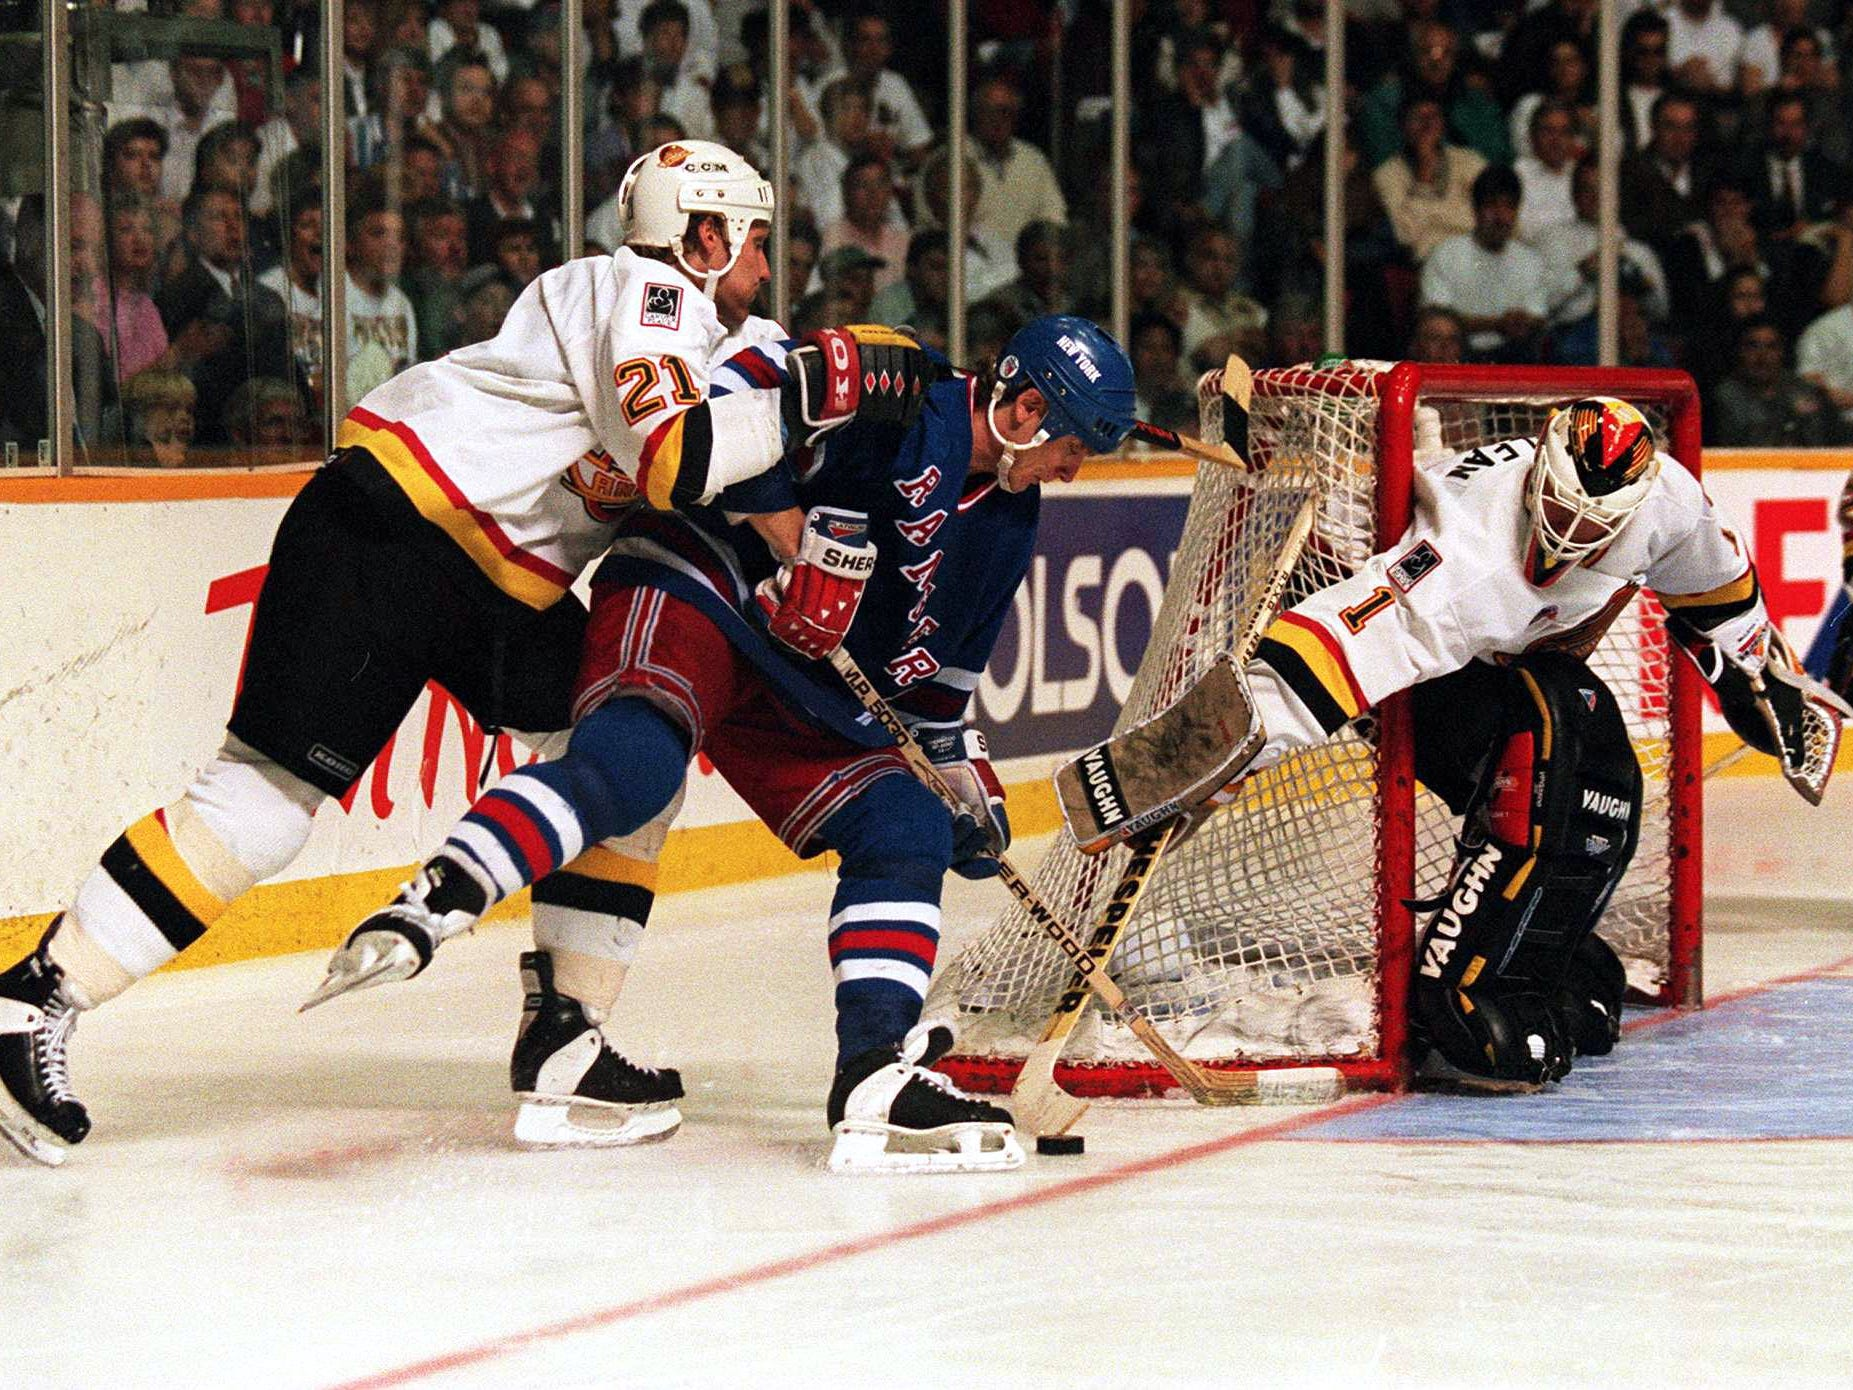 7 Jun 1994: RANGERS FORWARD STEVE LARMER IS MANHANDLED BY CANUCKS DEFENSEMAN JYRKI LUMME WHILE GOALTENDER KIRK MCLEAN POKE-CHECKS AWAY THE PUCK DURING THE THIRD OF GAME FOUR OF THE STANLEY CUP FINALS IN VANCOUVER, BRITISH COLUMBIA. LUMME WAS CALLED FOR A PENALTY